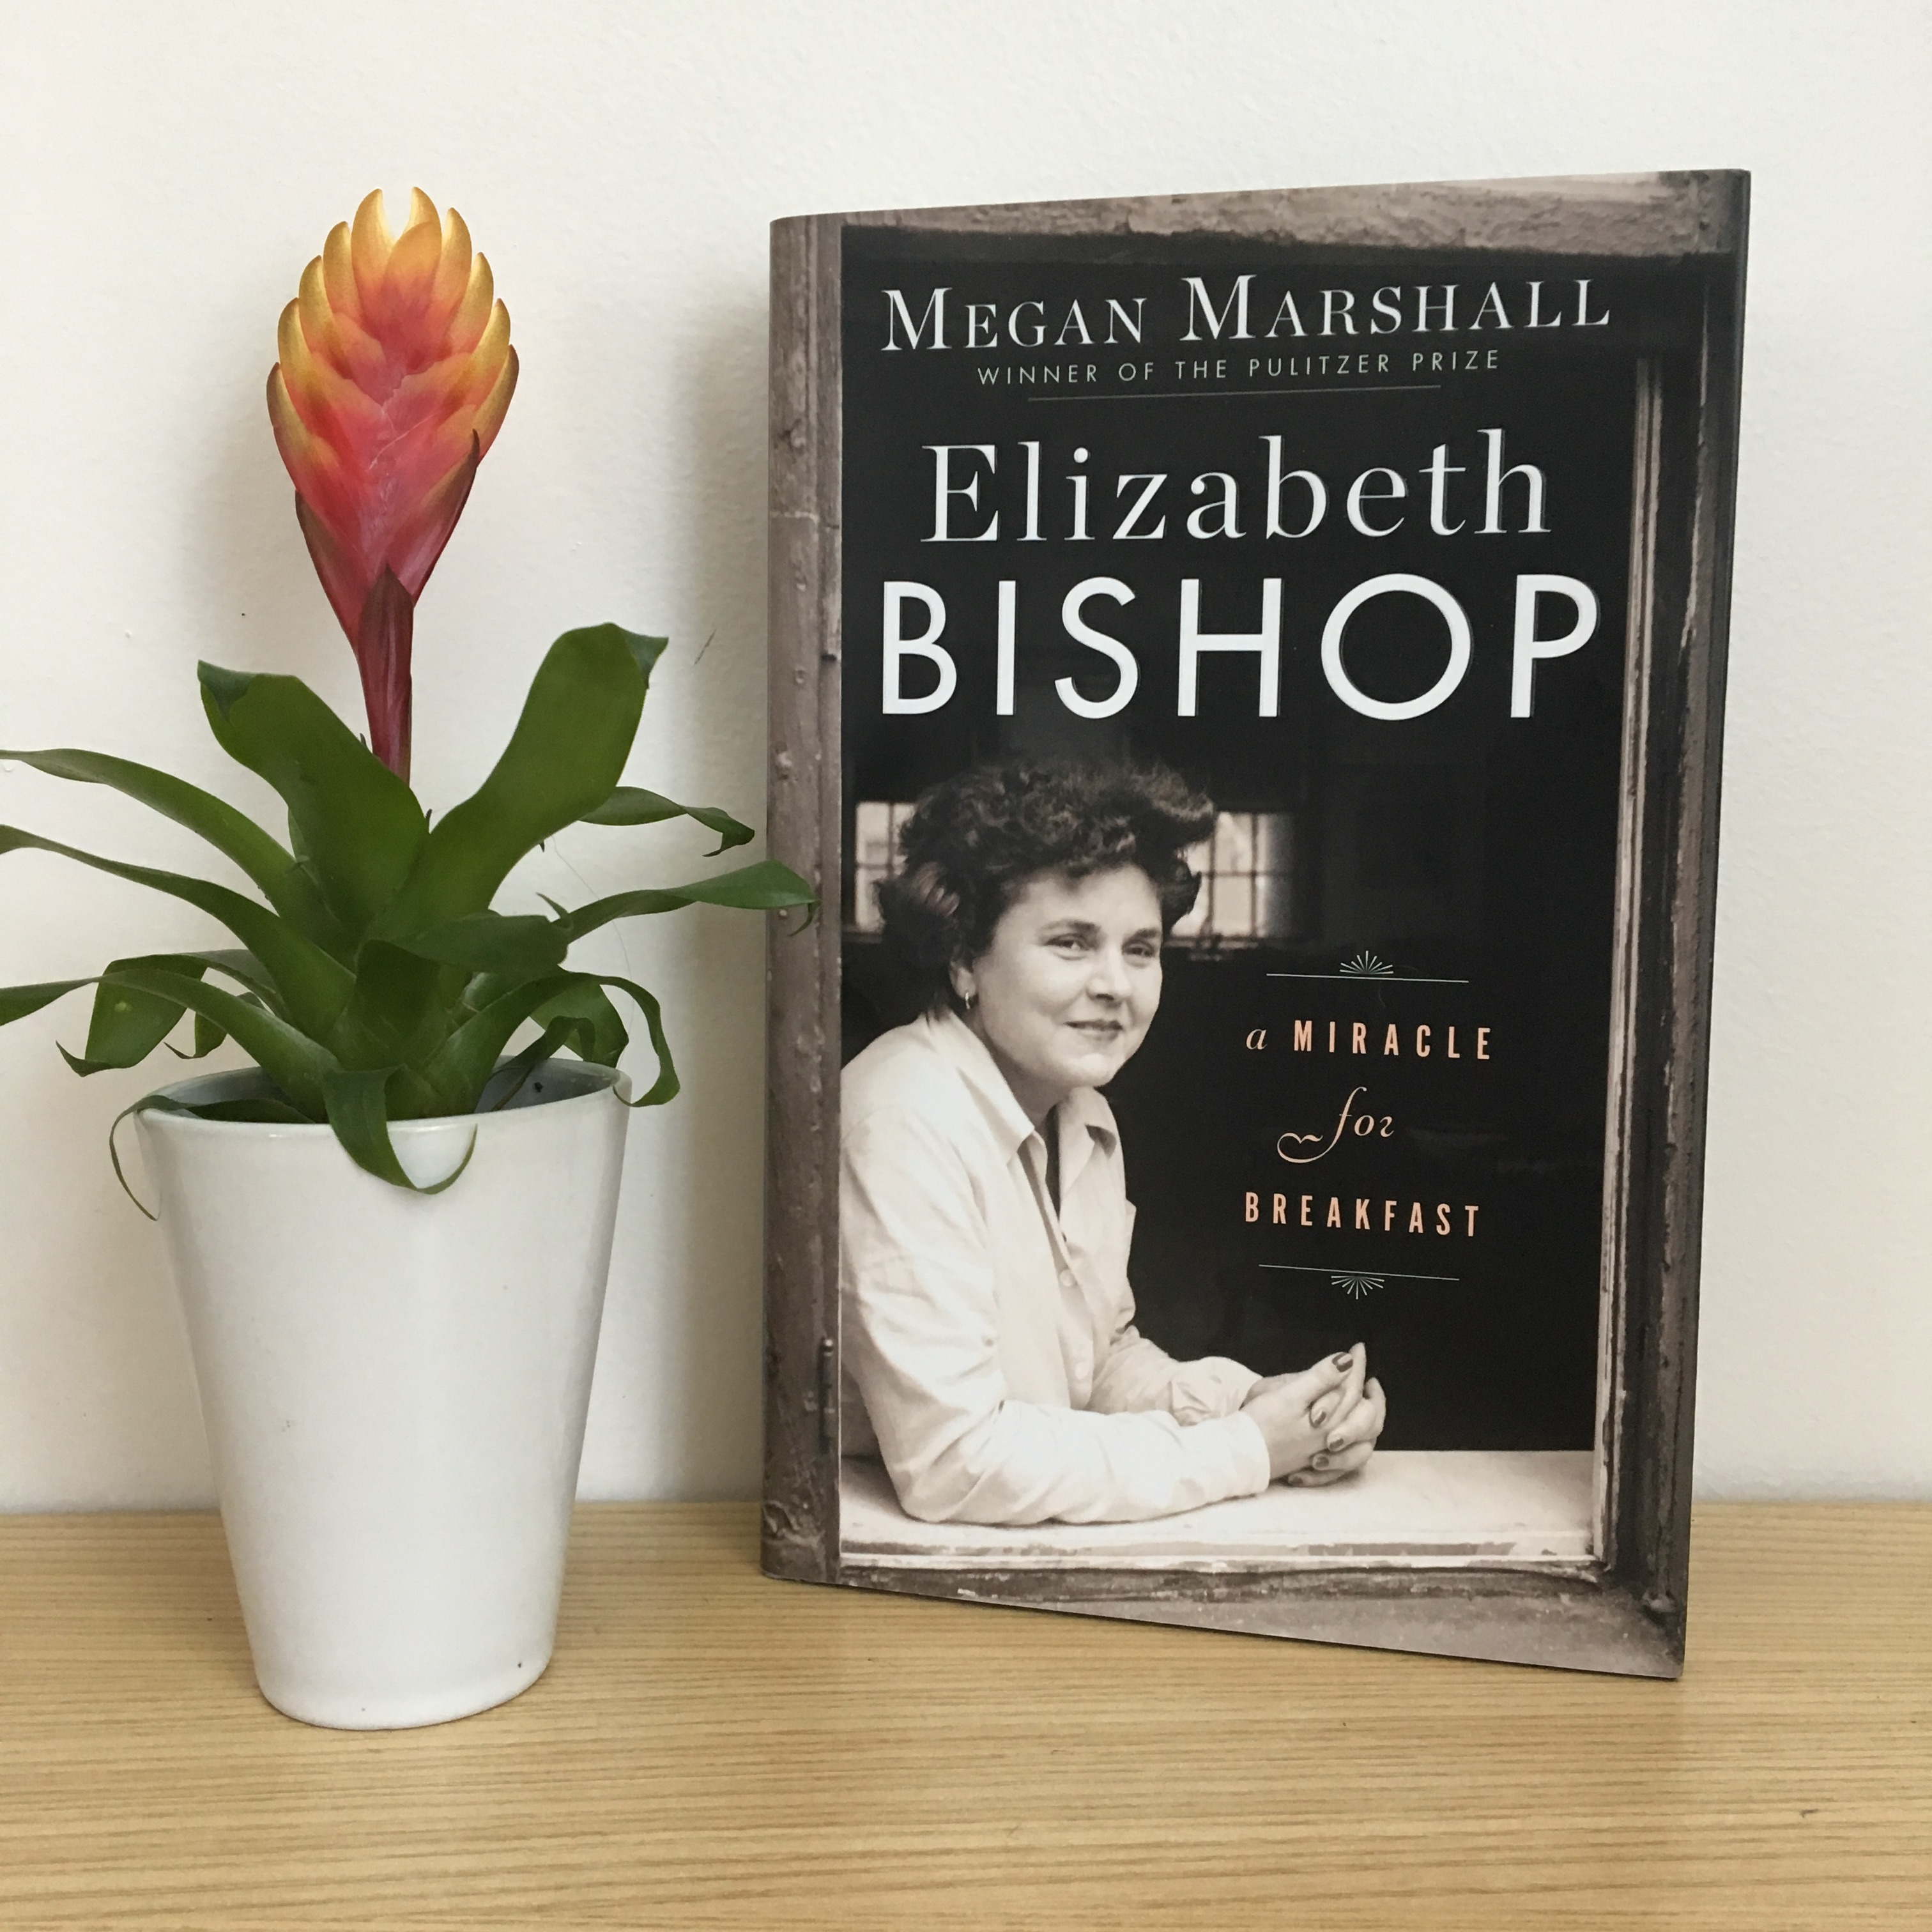 on the fish by elizabeth bishop Introduction & biography elizabeth bishop includes short biography and excerpts from important critical discussions for some of bishop's best known poems: the fish, the man-moth, at the fishhouses, questions of travel, filling station, the armadillo, in the waiting room, pink dog, crusoe in england, one art.